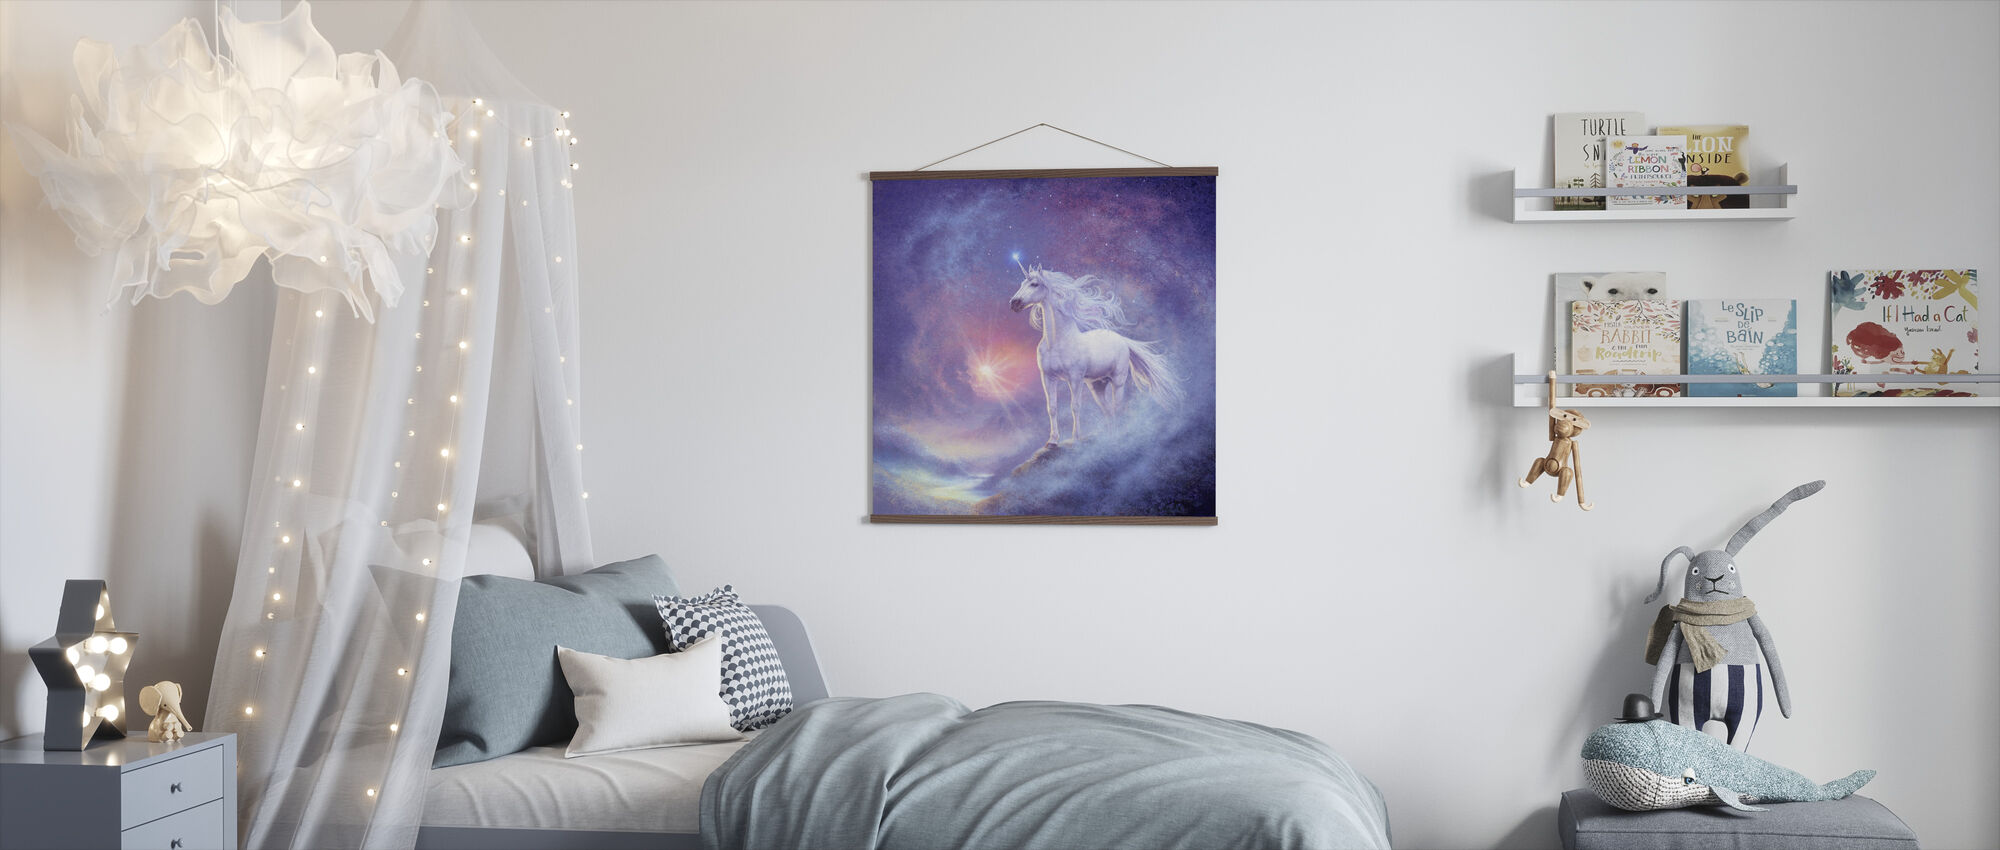 Astral Unicorn - Poster - Kids Room